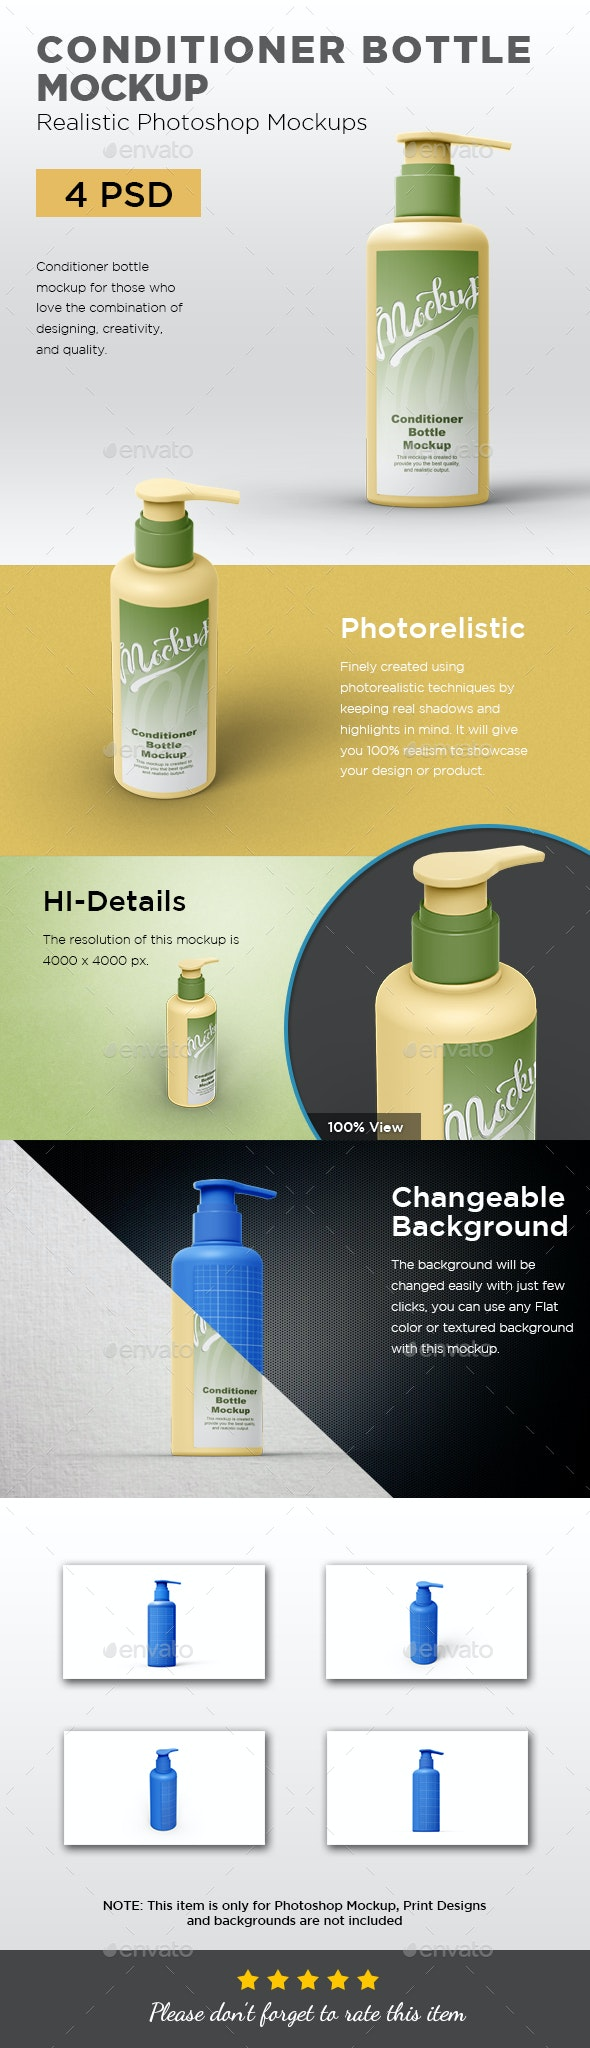 Conditioner Bottle Mockup - Beauty Packaging